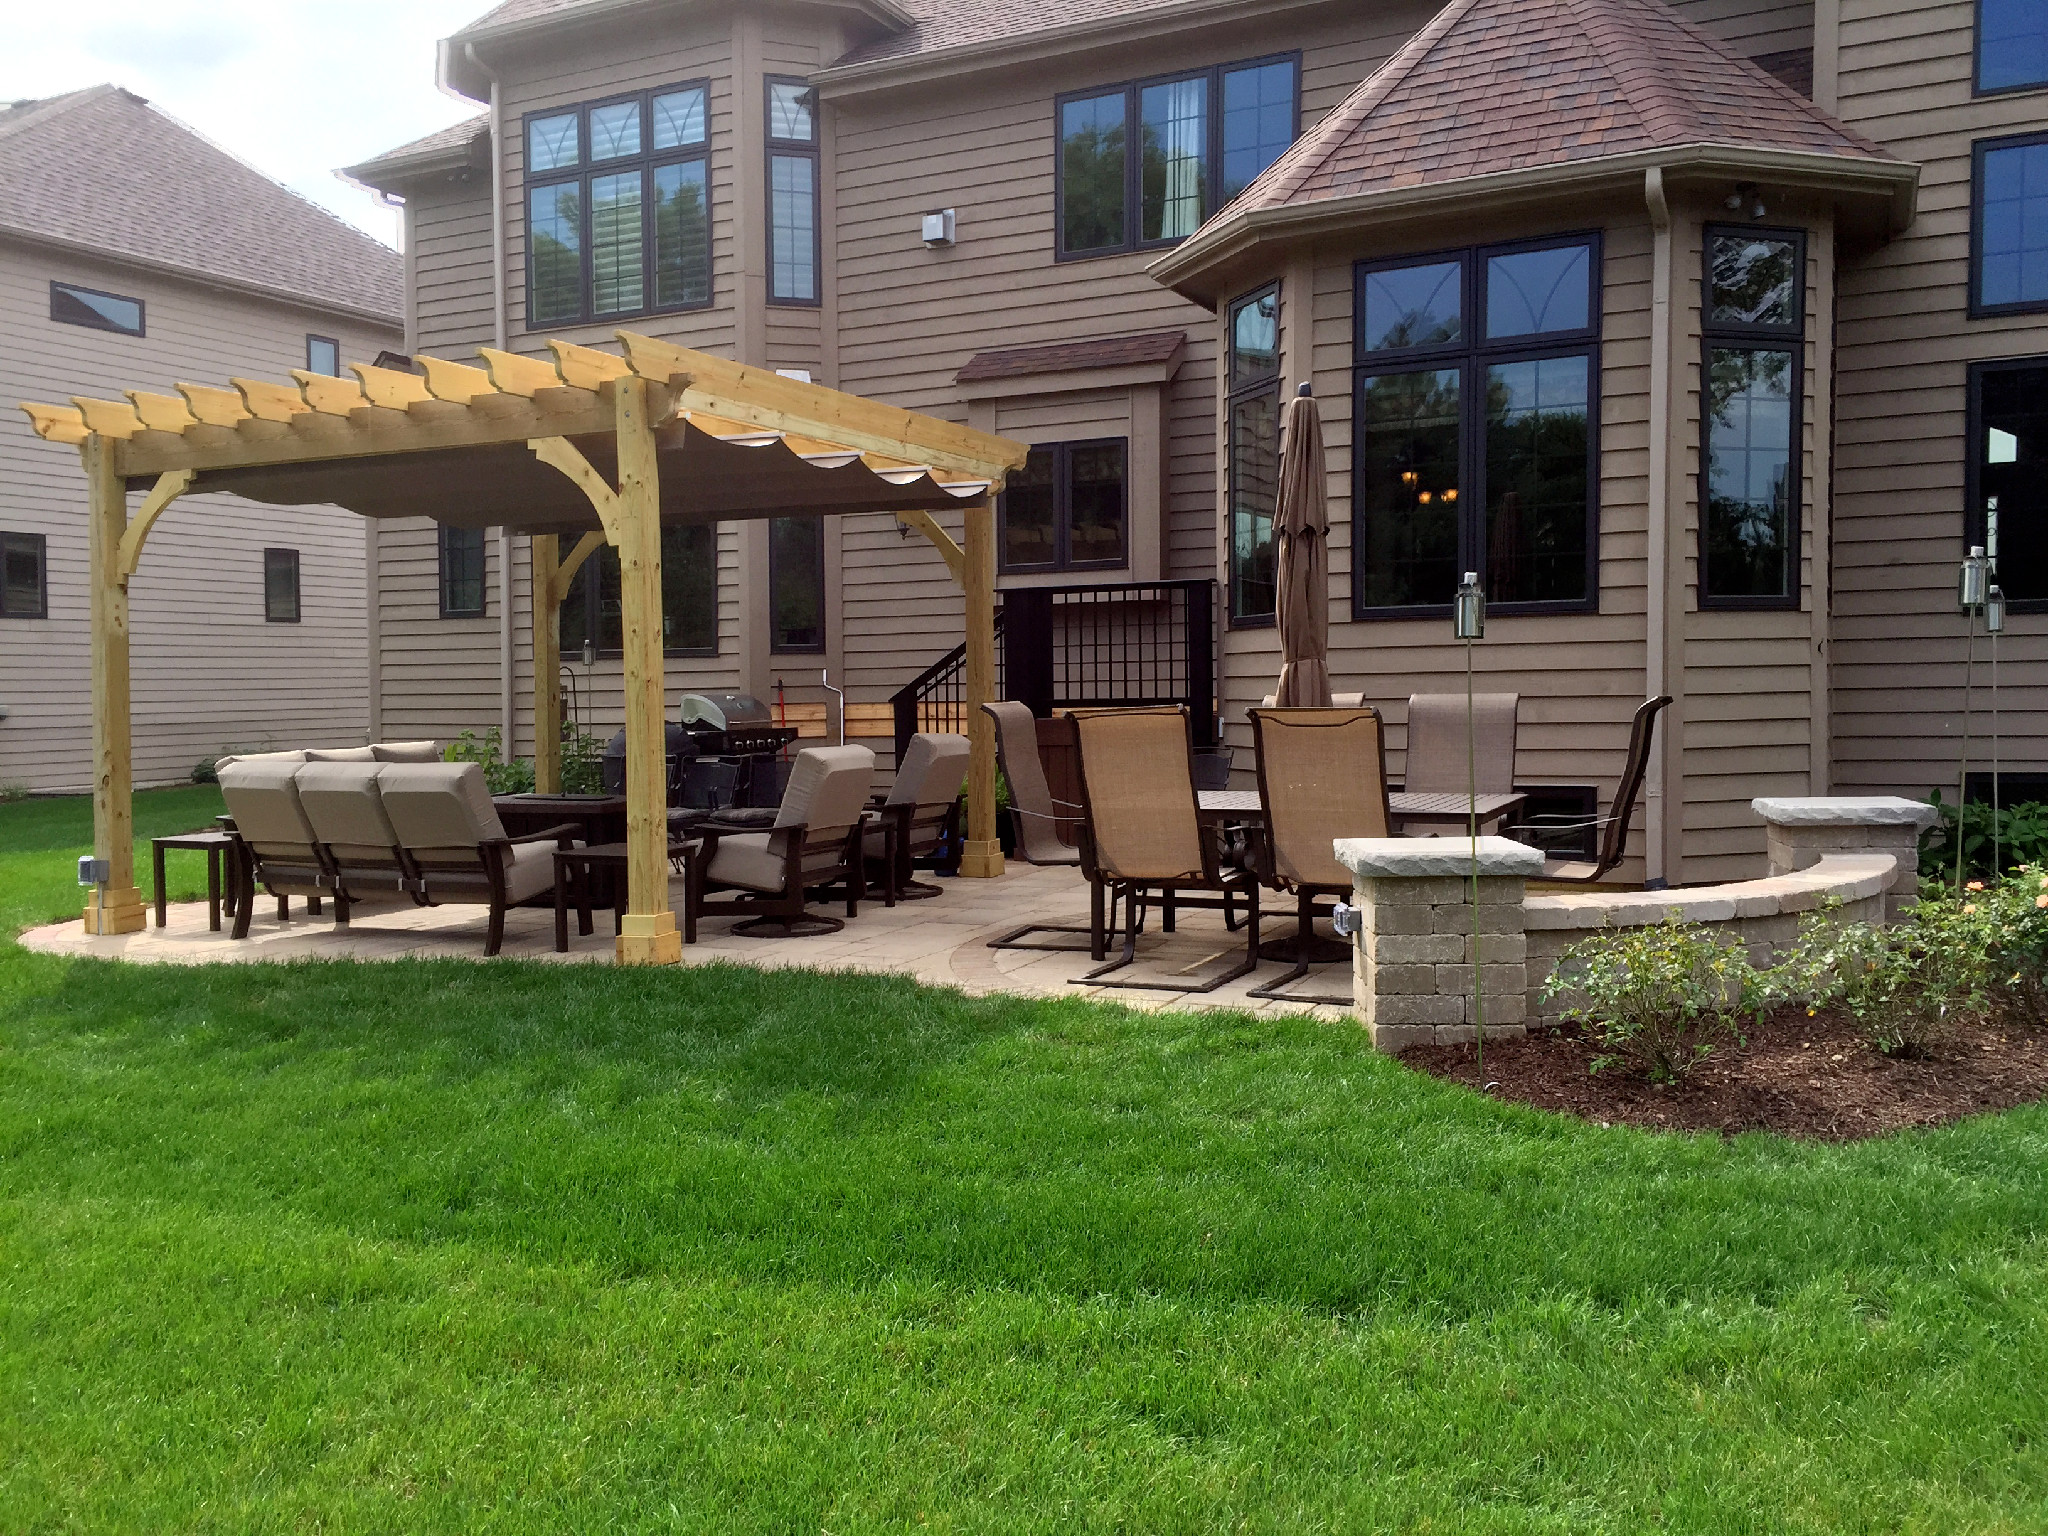 Pergola Shade Solutions for Your Chicagoland Backyard ... on Canvas Sun Shade Pergola id=49179